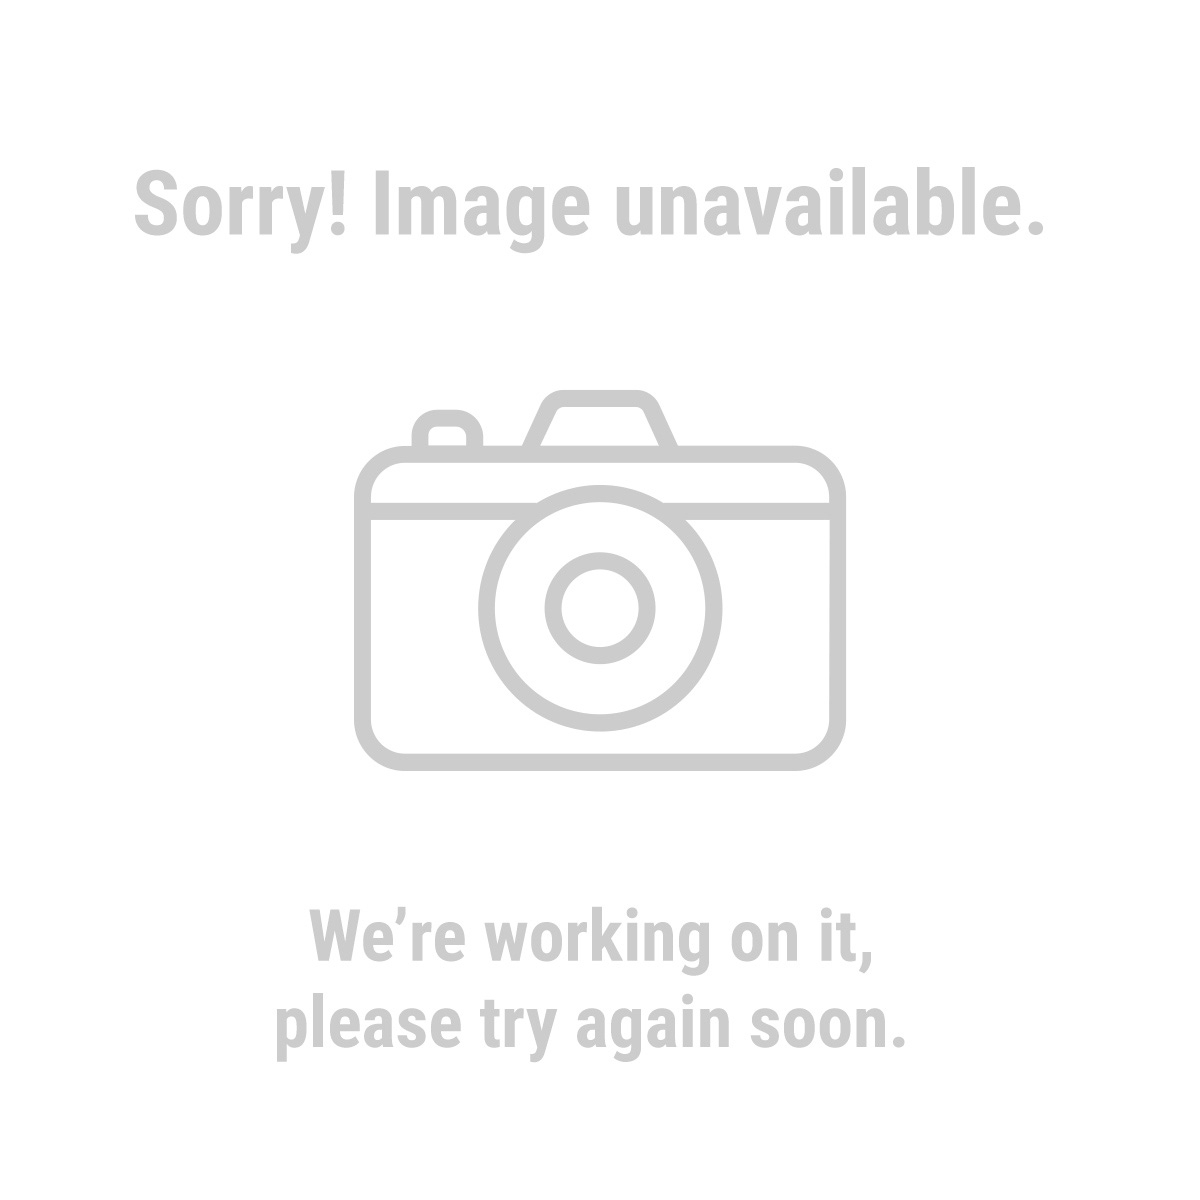 HARDY 61744 9 mil Nitrile Powder-Free Gloves 50 Pc Large